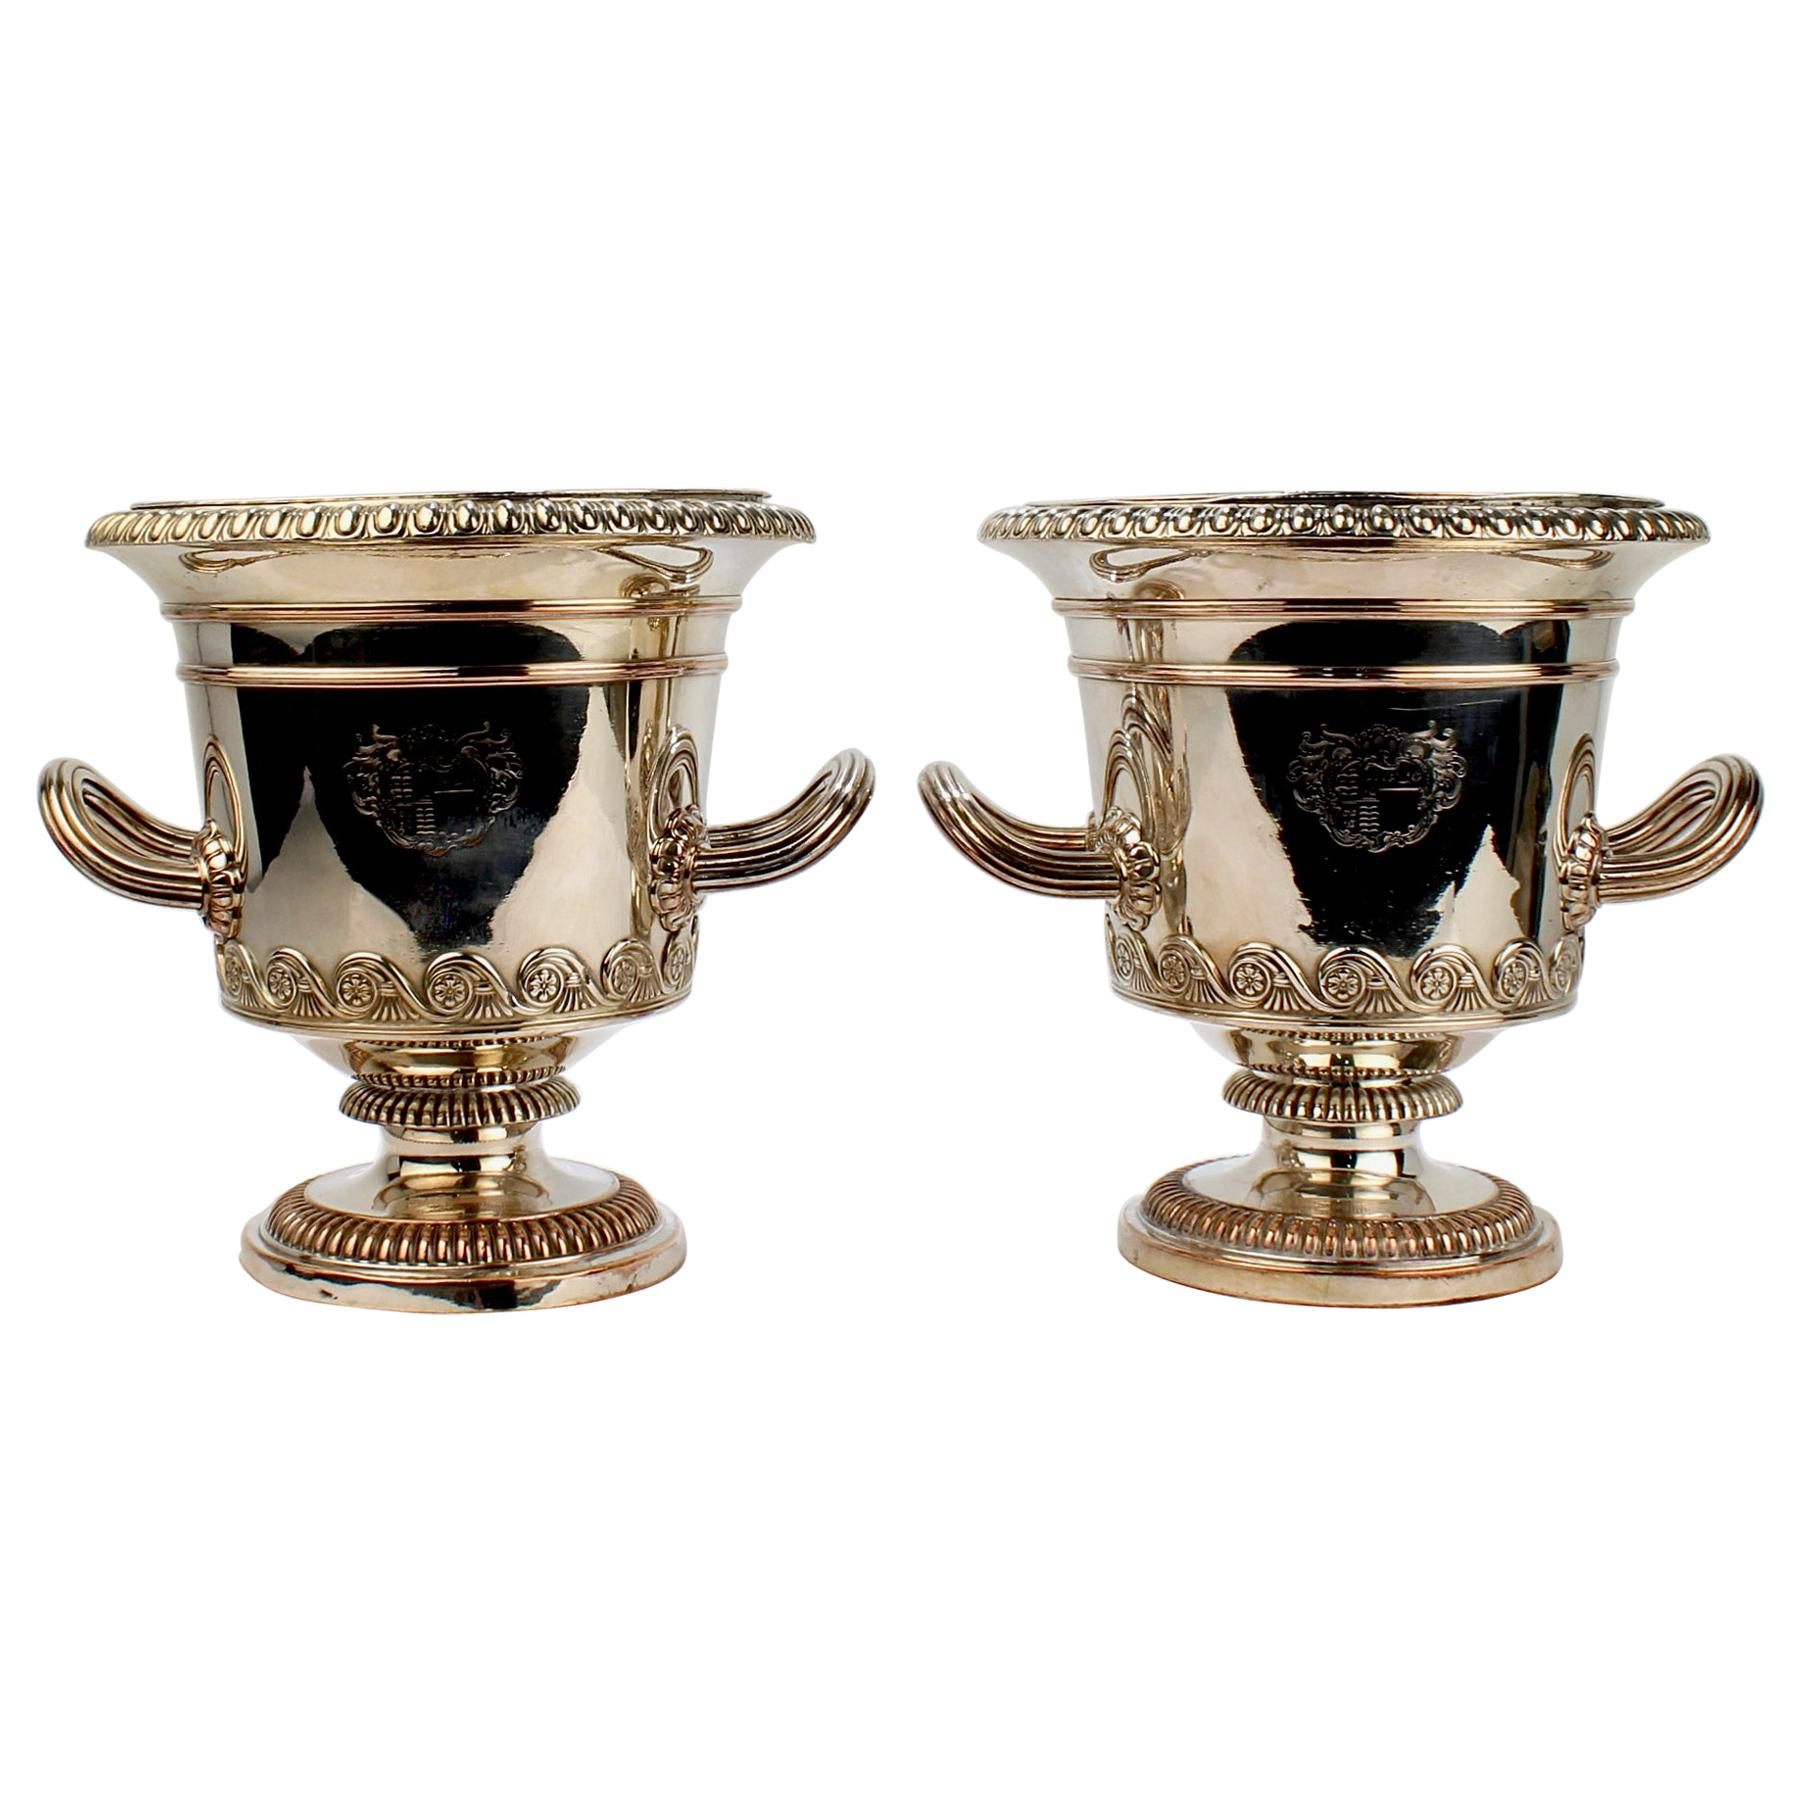 Pair of Antique English Neoclassical Sheffield Plate Wine or Champagne Coolers